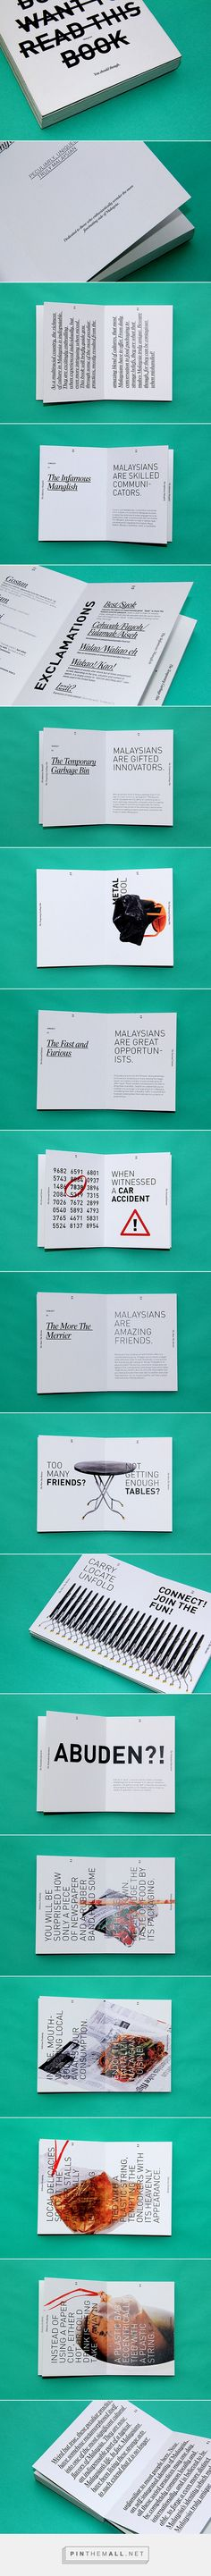 You Probably Do Not Want to Read This Book on Behance